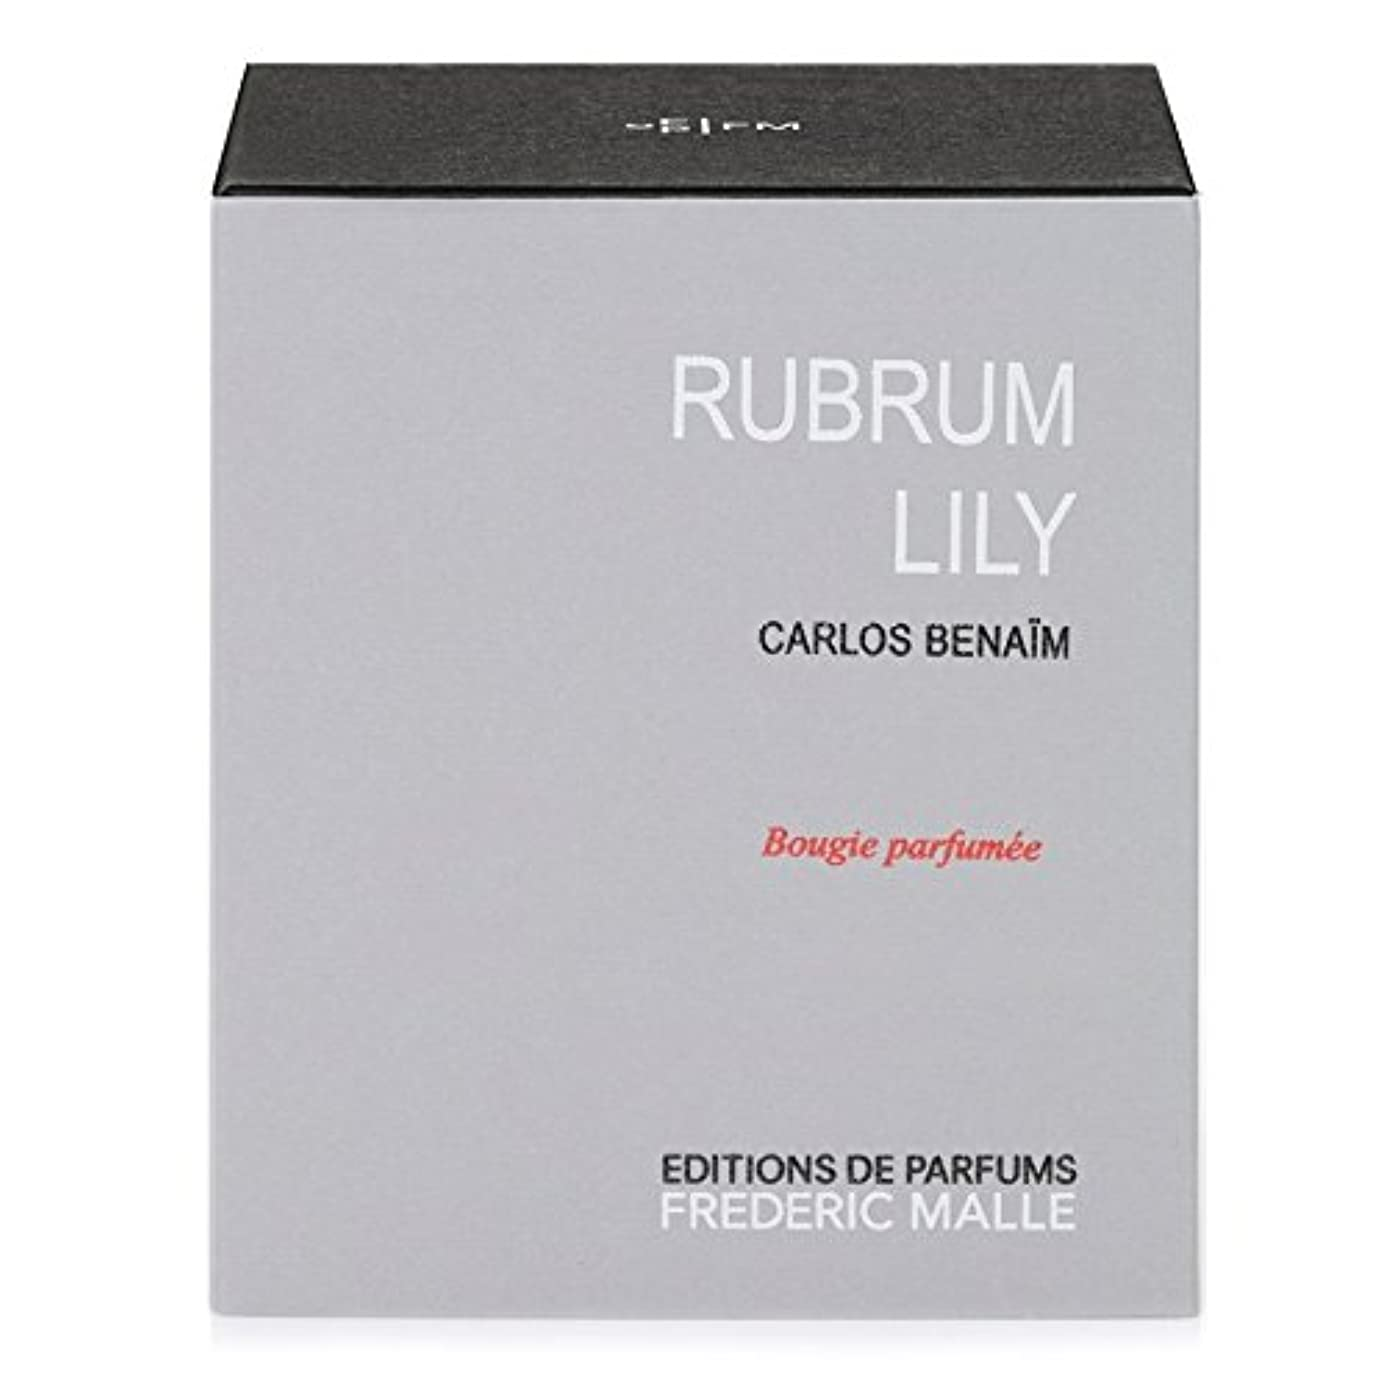 Frederic Malle Rubrum Lily Scented Candle (Pack of 2) - フレデリック?マルルブルムユリの香りのキャンドル x2 [並行輸入品]